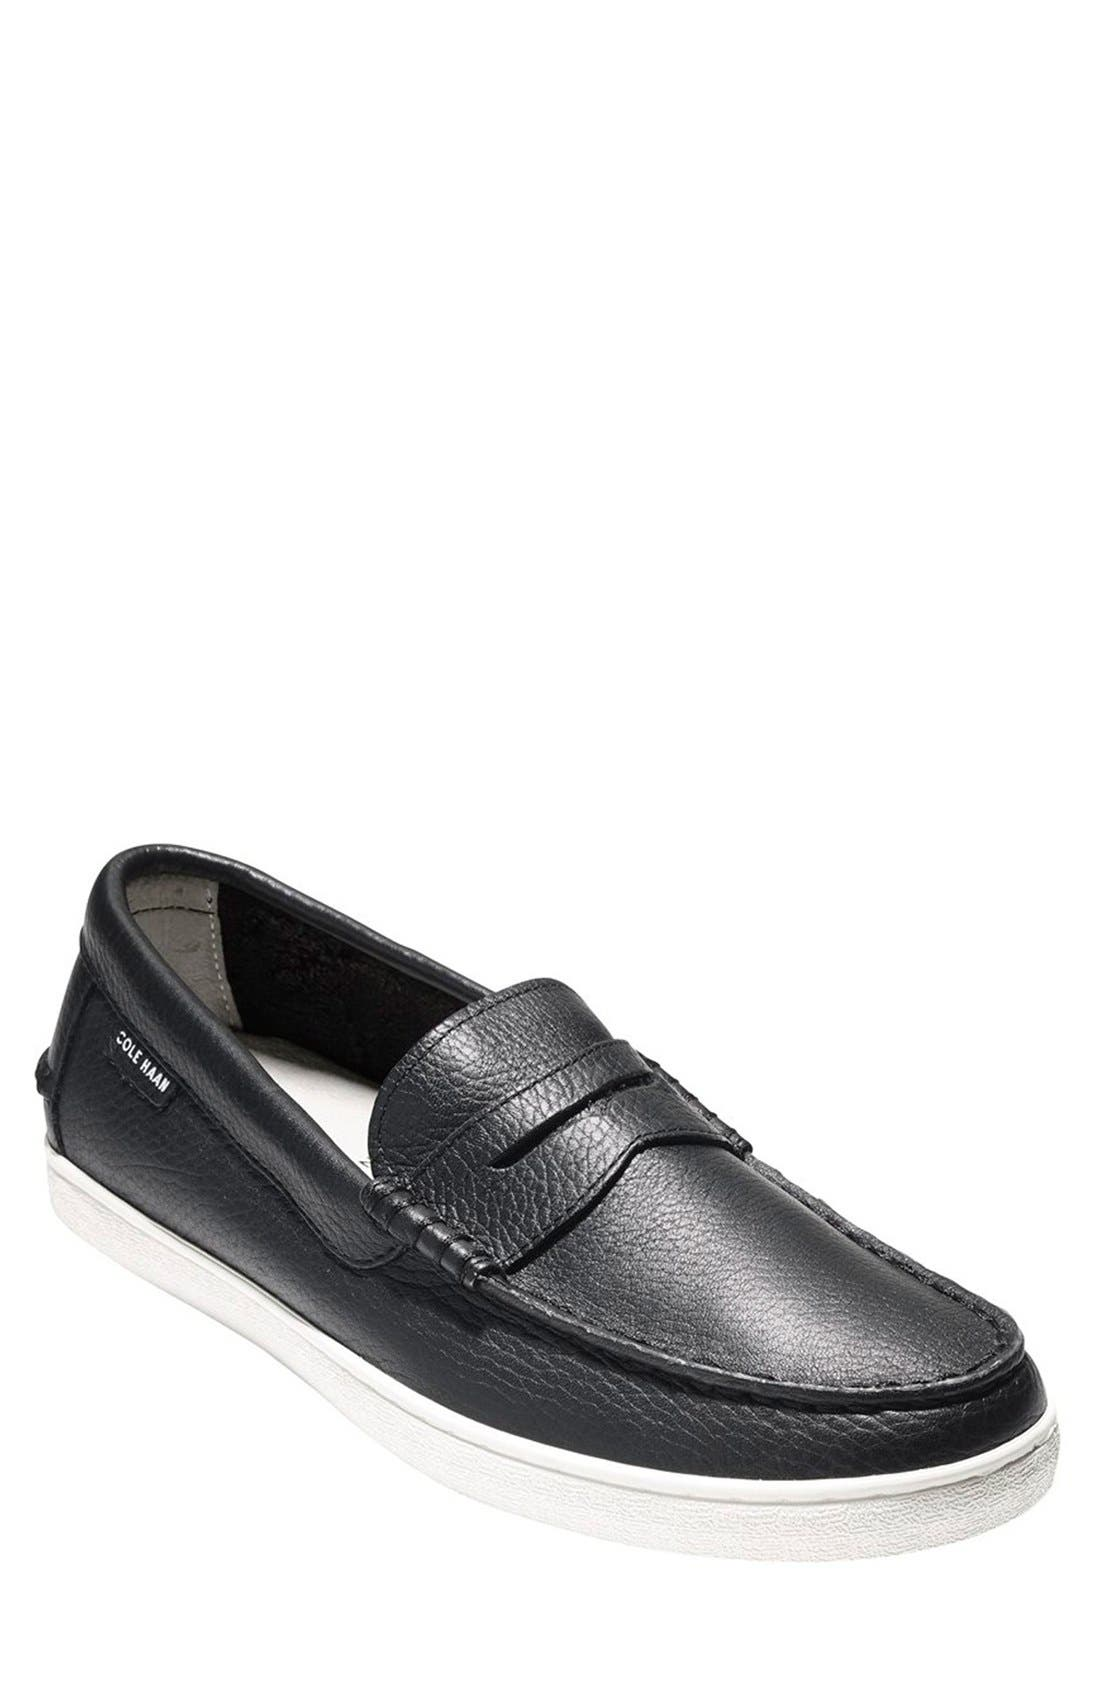 COLE HAAN, 'Pinch' Penny Loafer, Alternate thumbnail 10, color, BLACK LEATHER/ WHITE